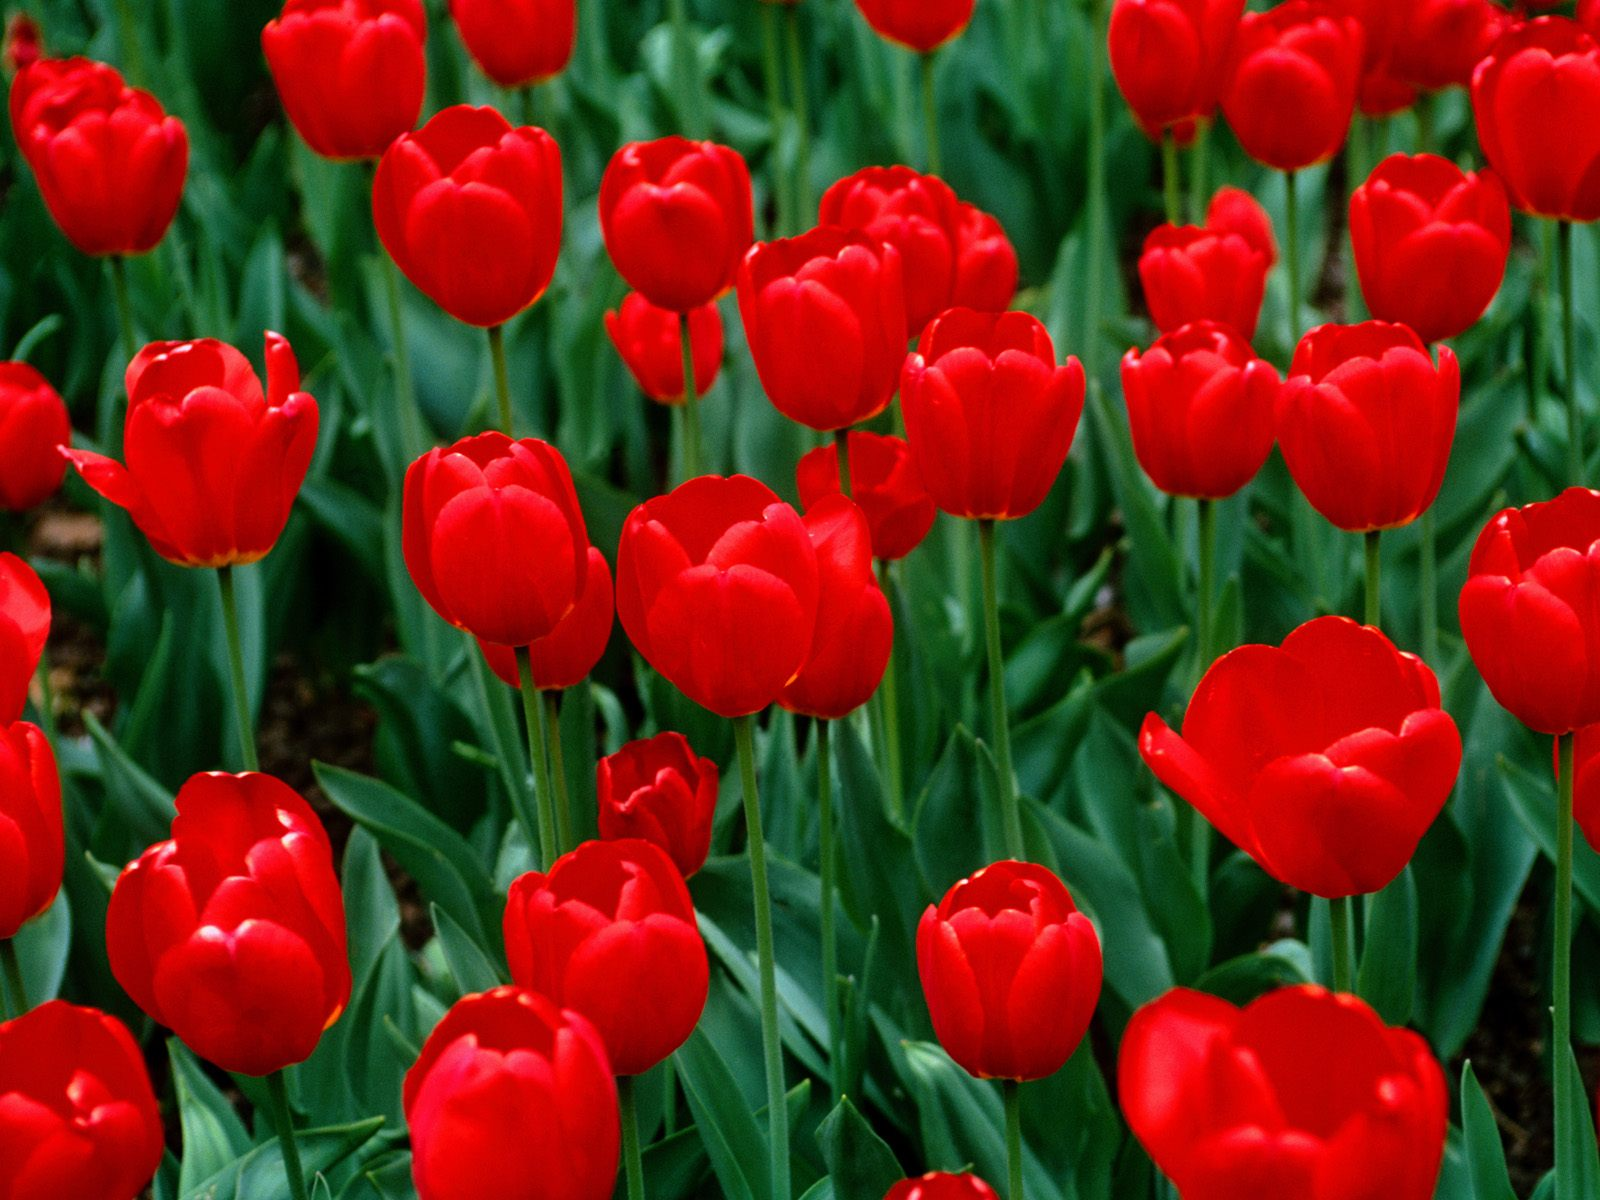 This is Tulips: